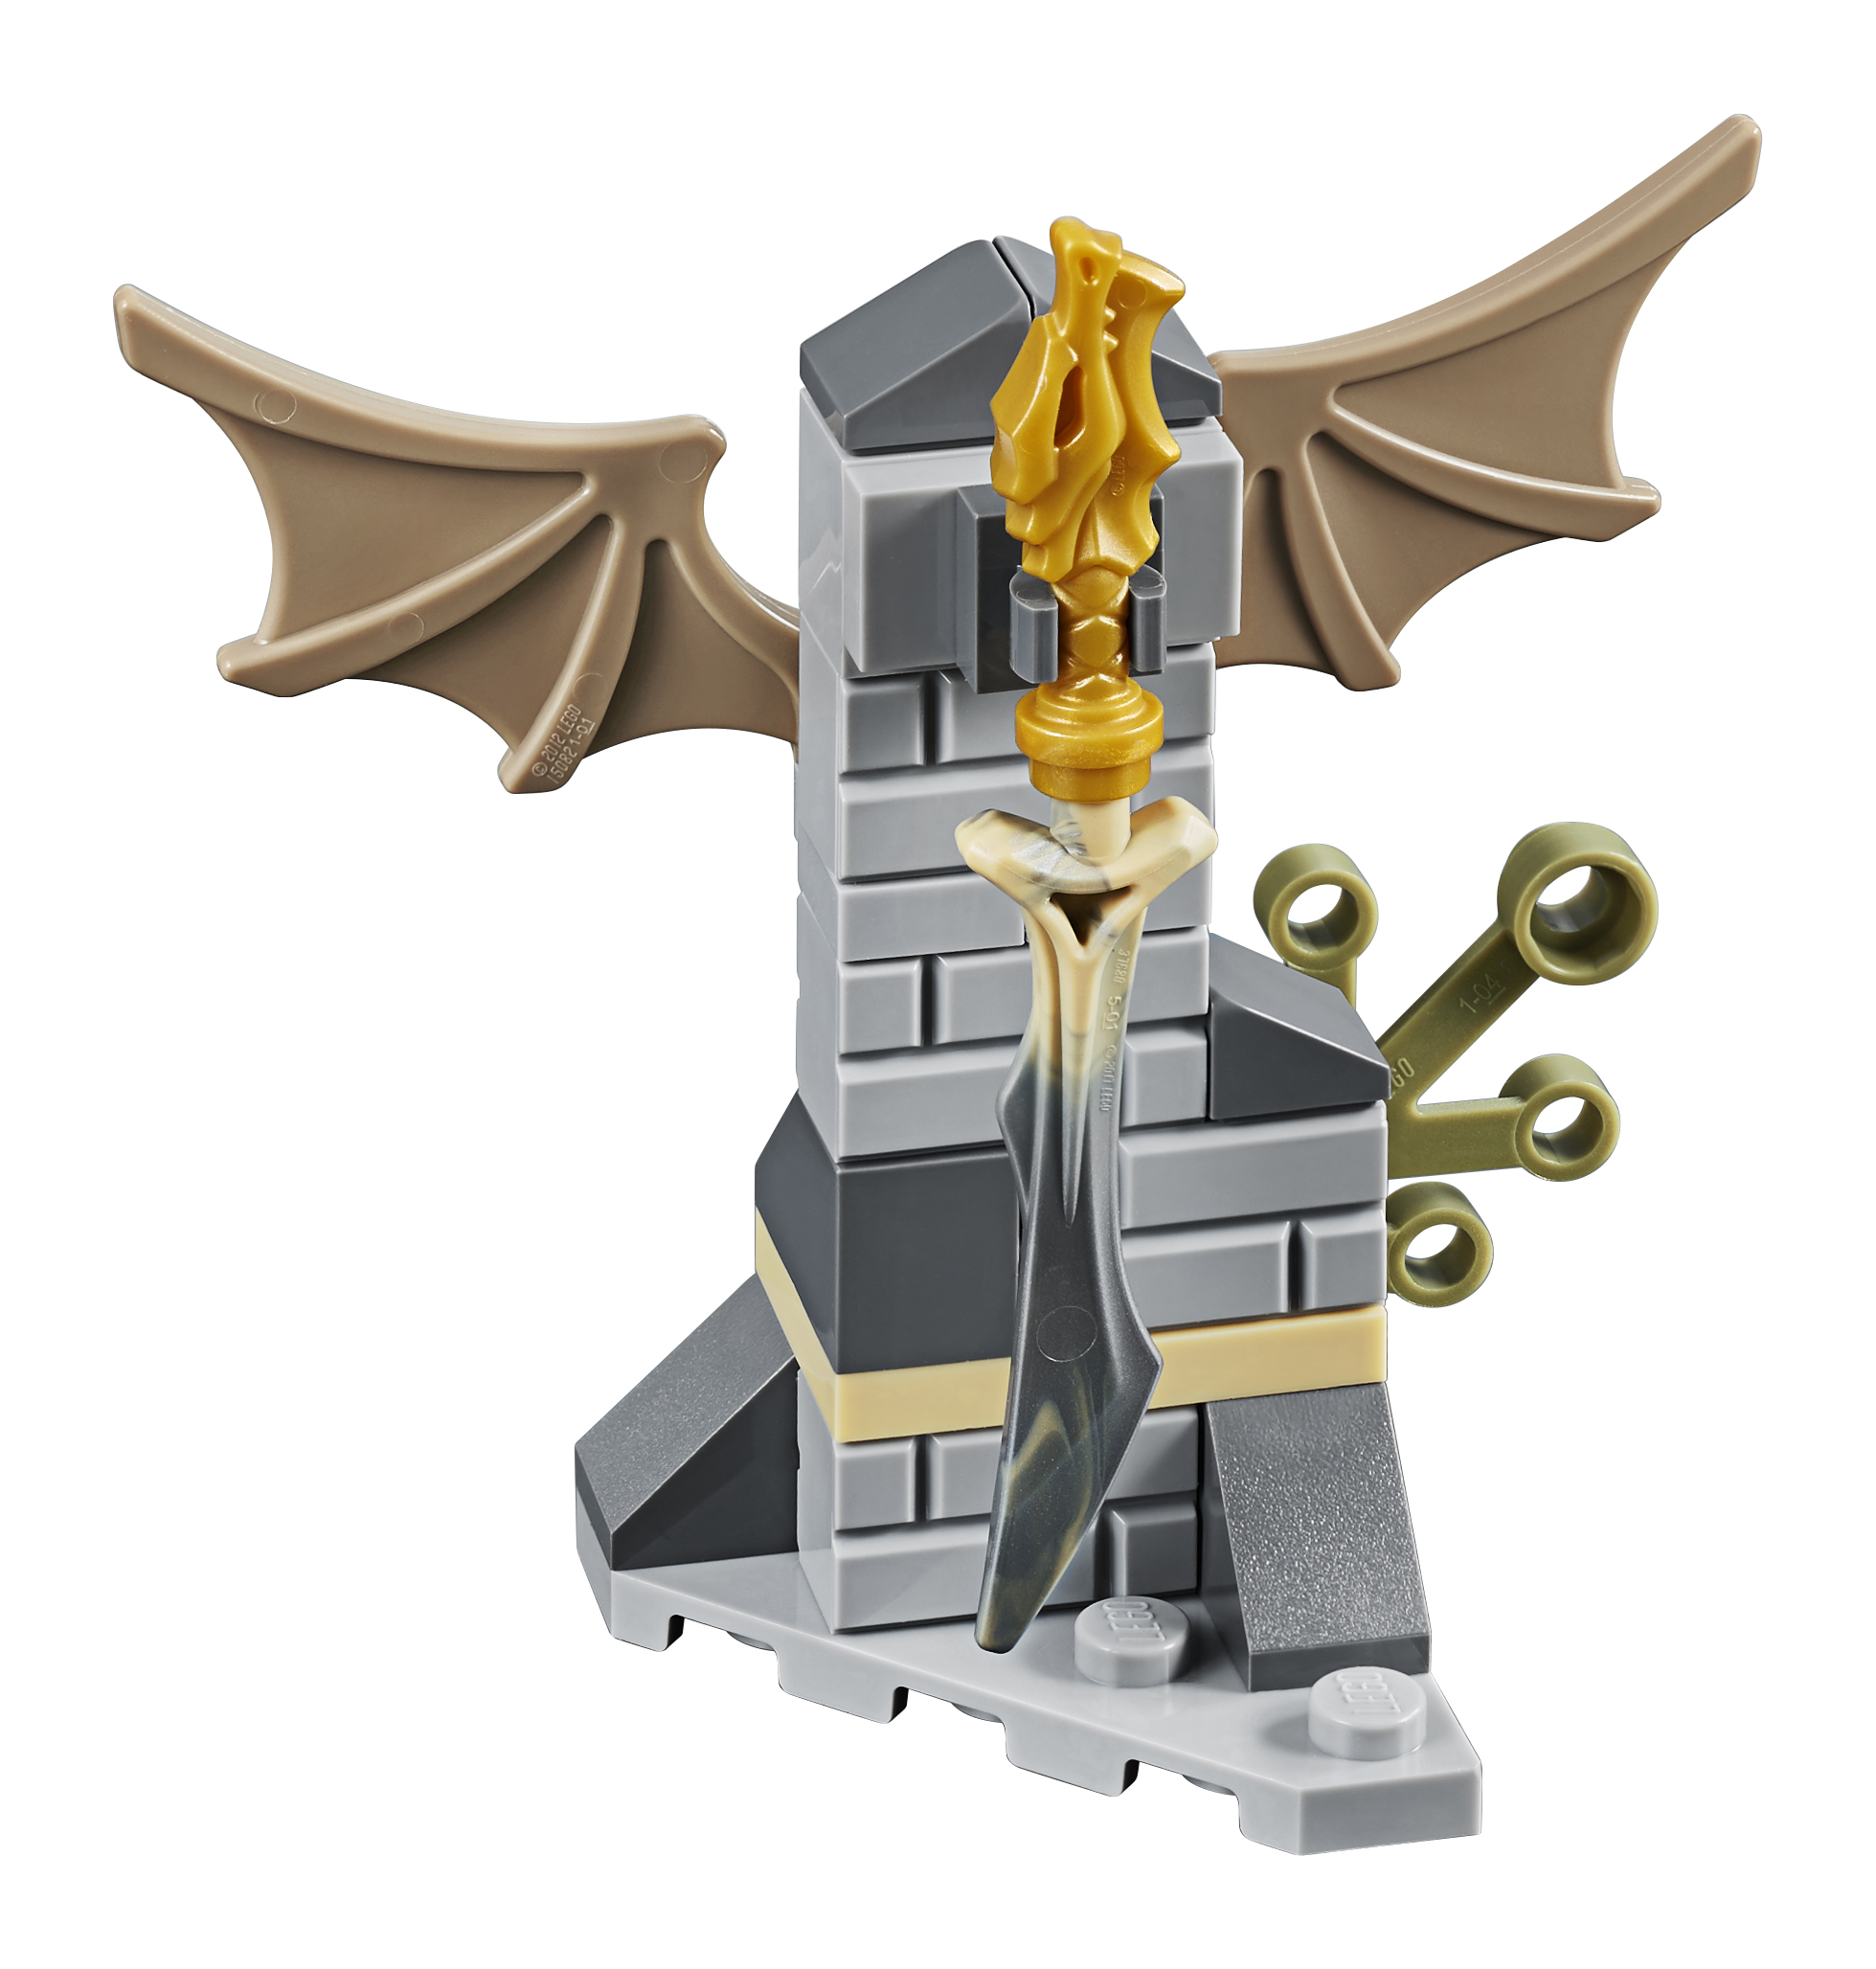 Lego Ninjago Destiny S Wing 70650 Ninja Warrior Building Toy Walmart Com Walmart Com These are the instructions for building the lego ninjago golden dragon master that was released in 2018. walmart